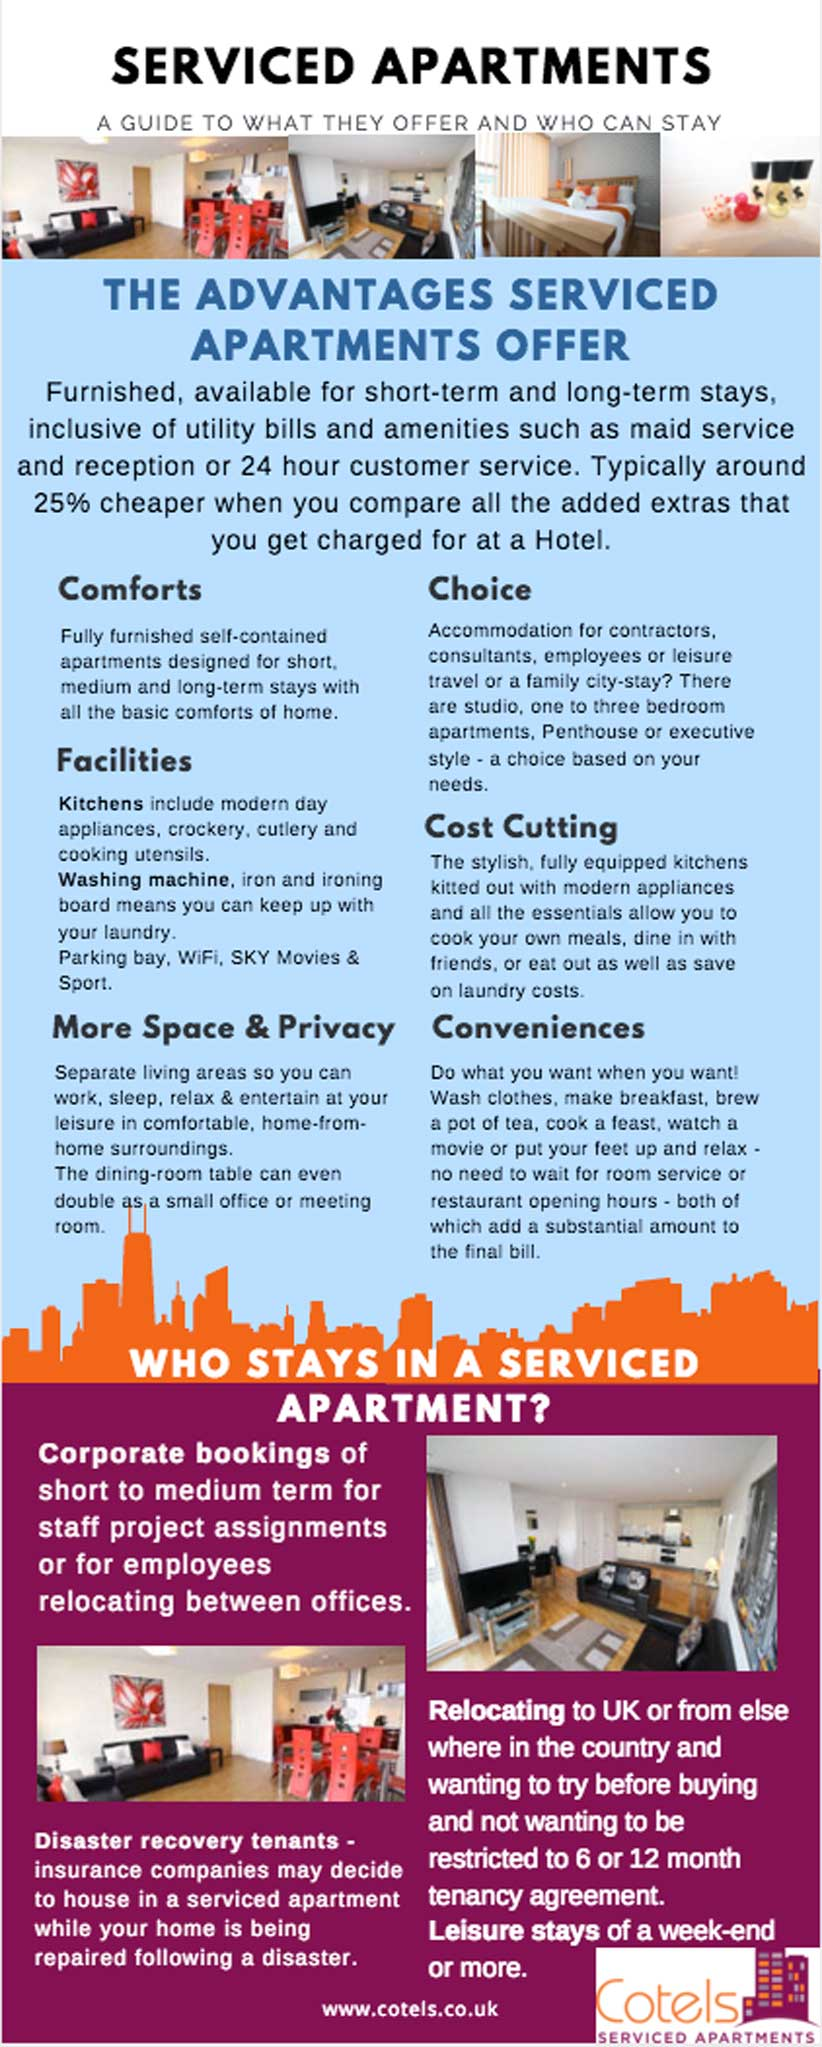 Infographic on the advantages of serviced apartments.